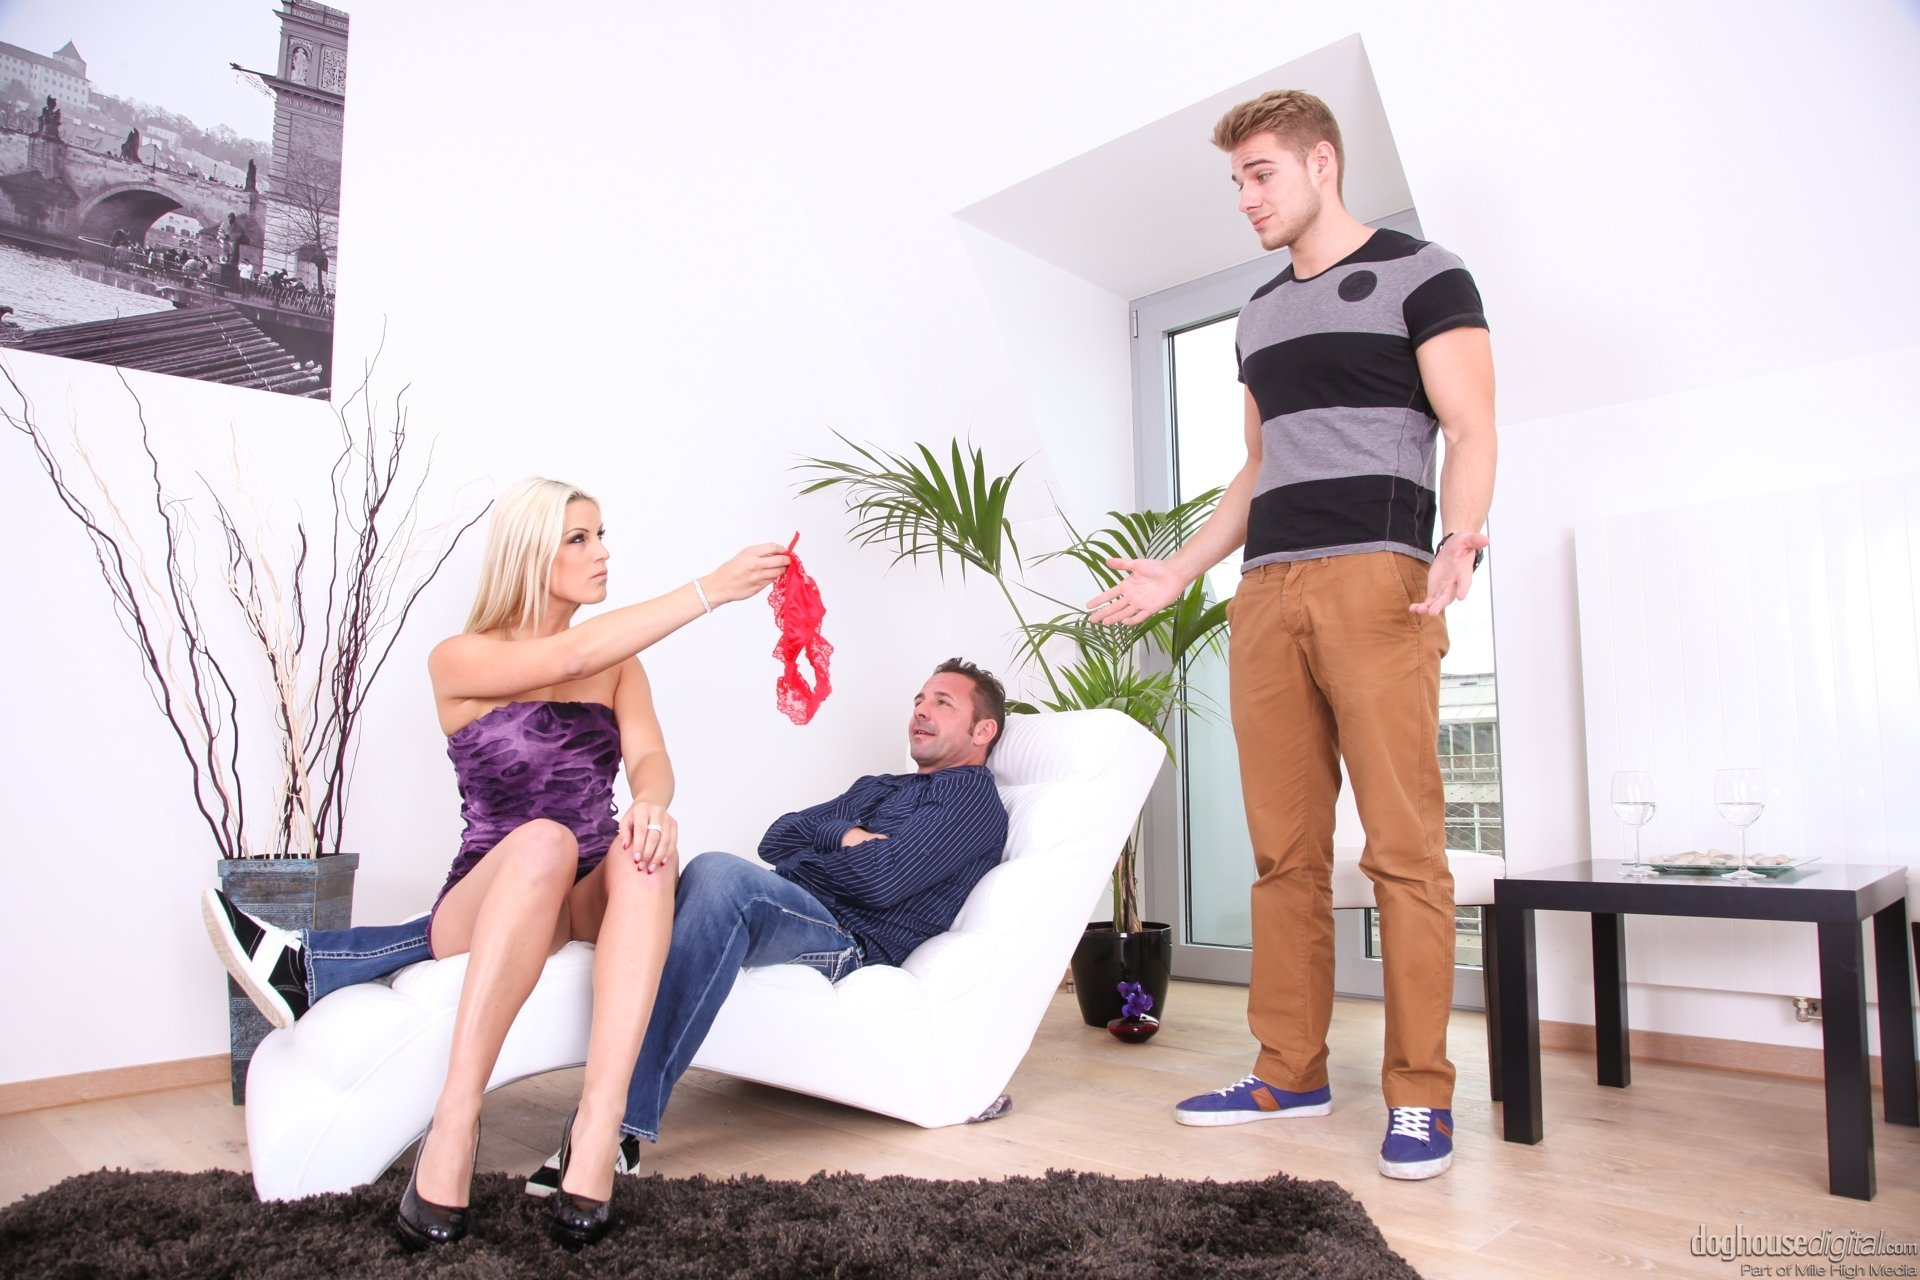 Wife gets tied up and forced to watch hubby